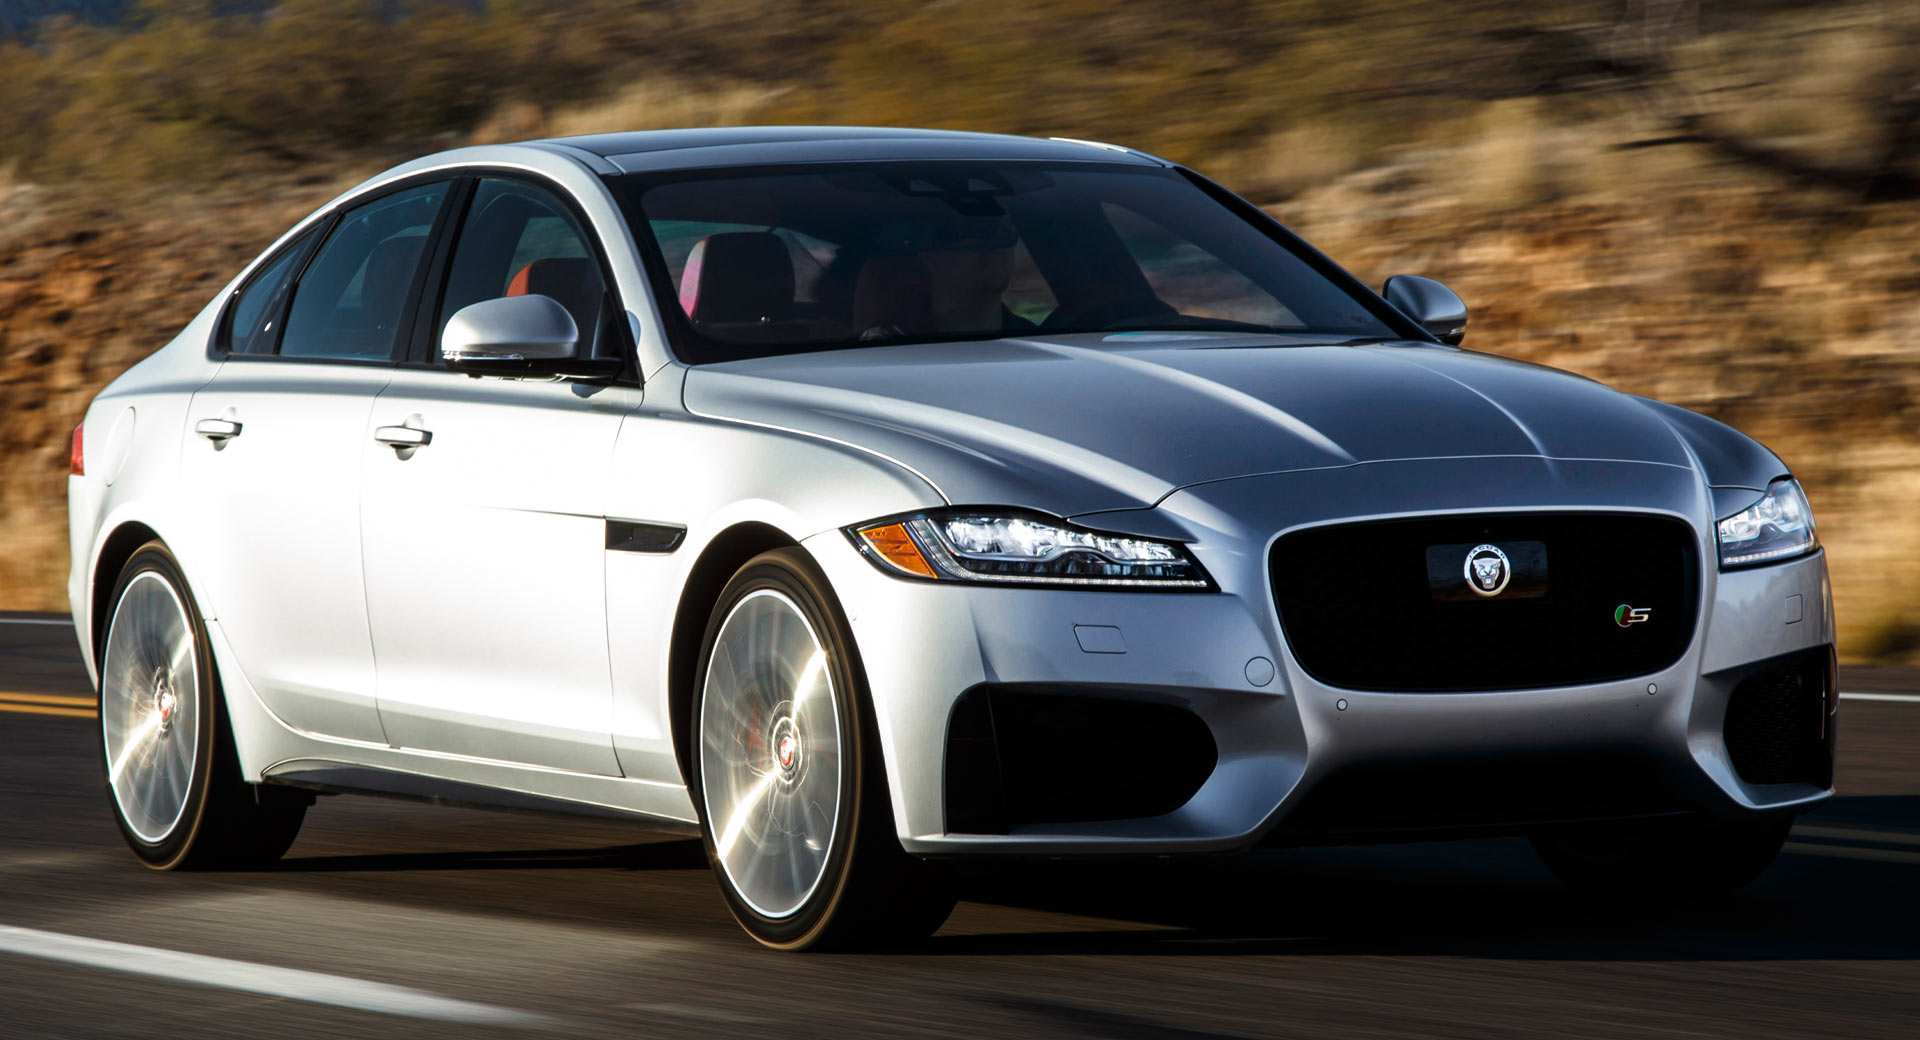 58 All New 2020 Jaguar XK Picture